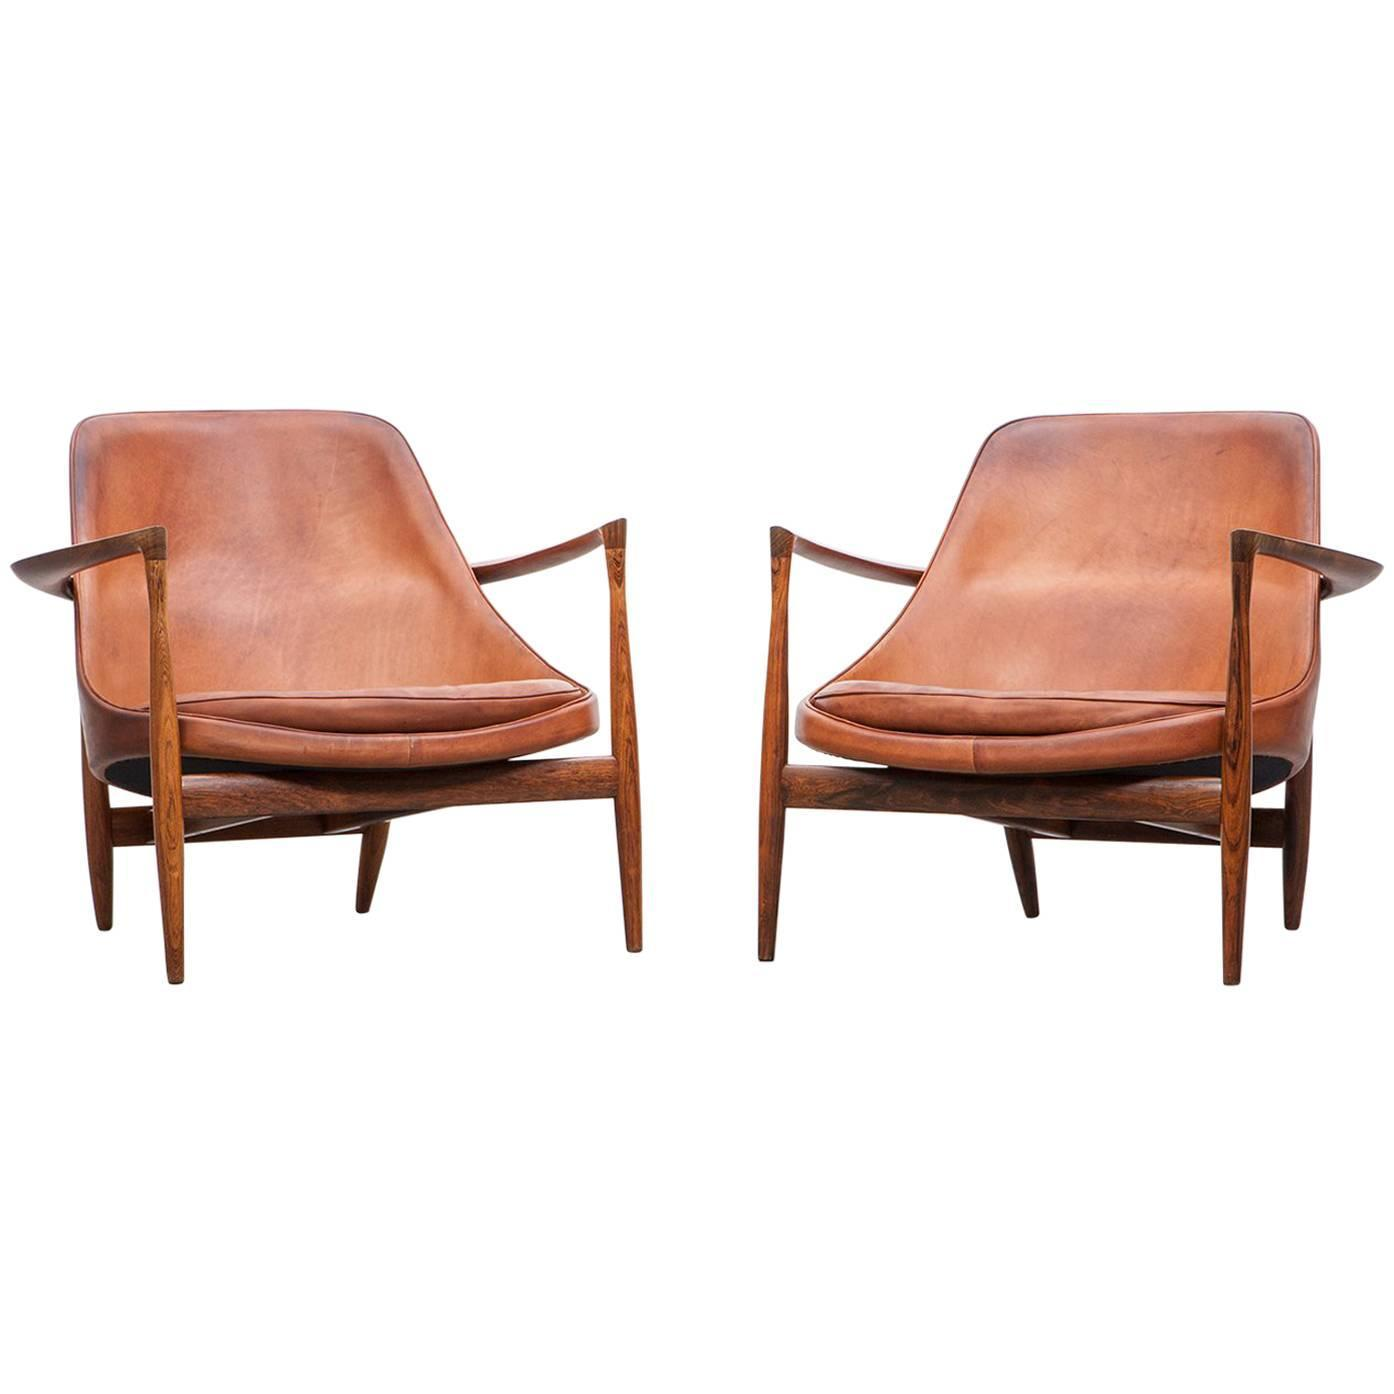 1950 s brown wooden and leather pair of lounge chairs by ib kofod larsen for sale at 1stdibs